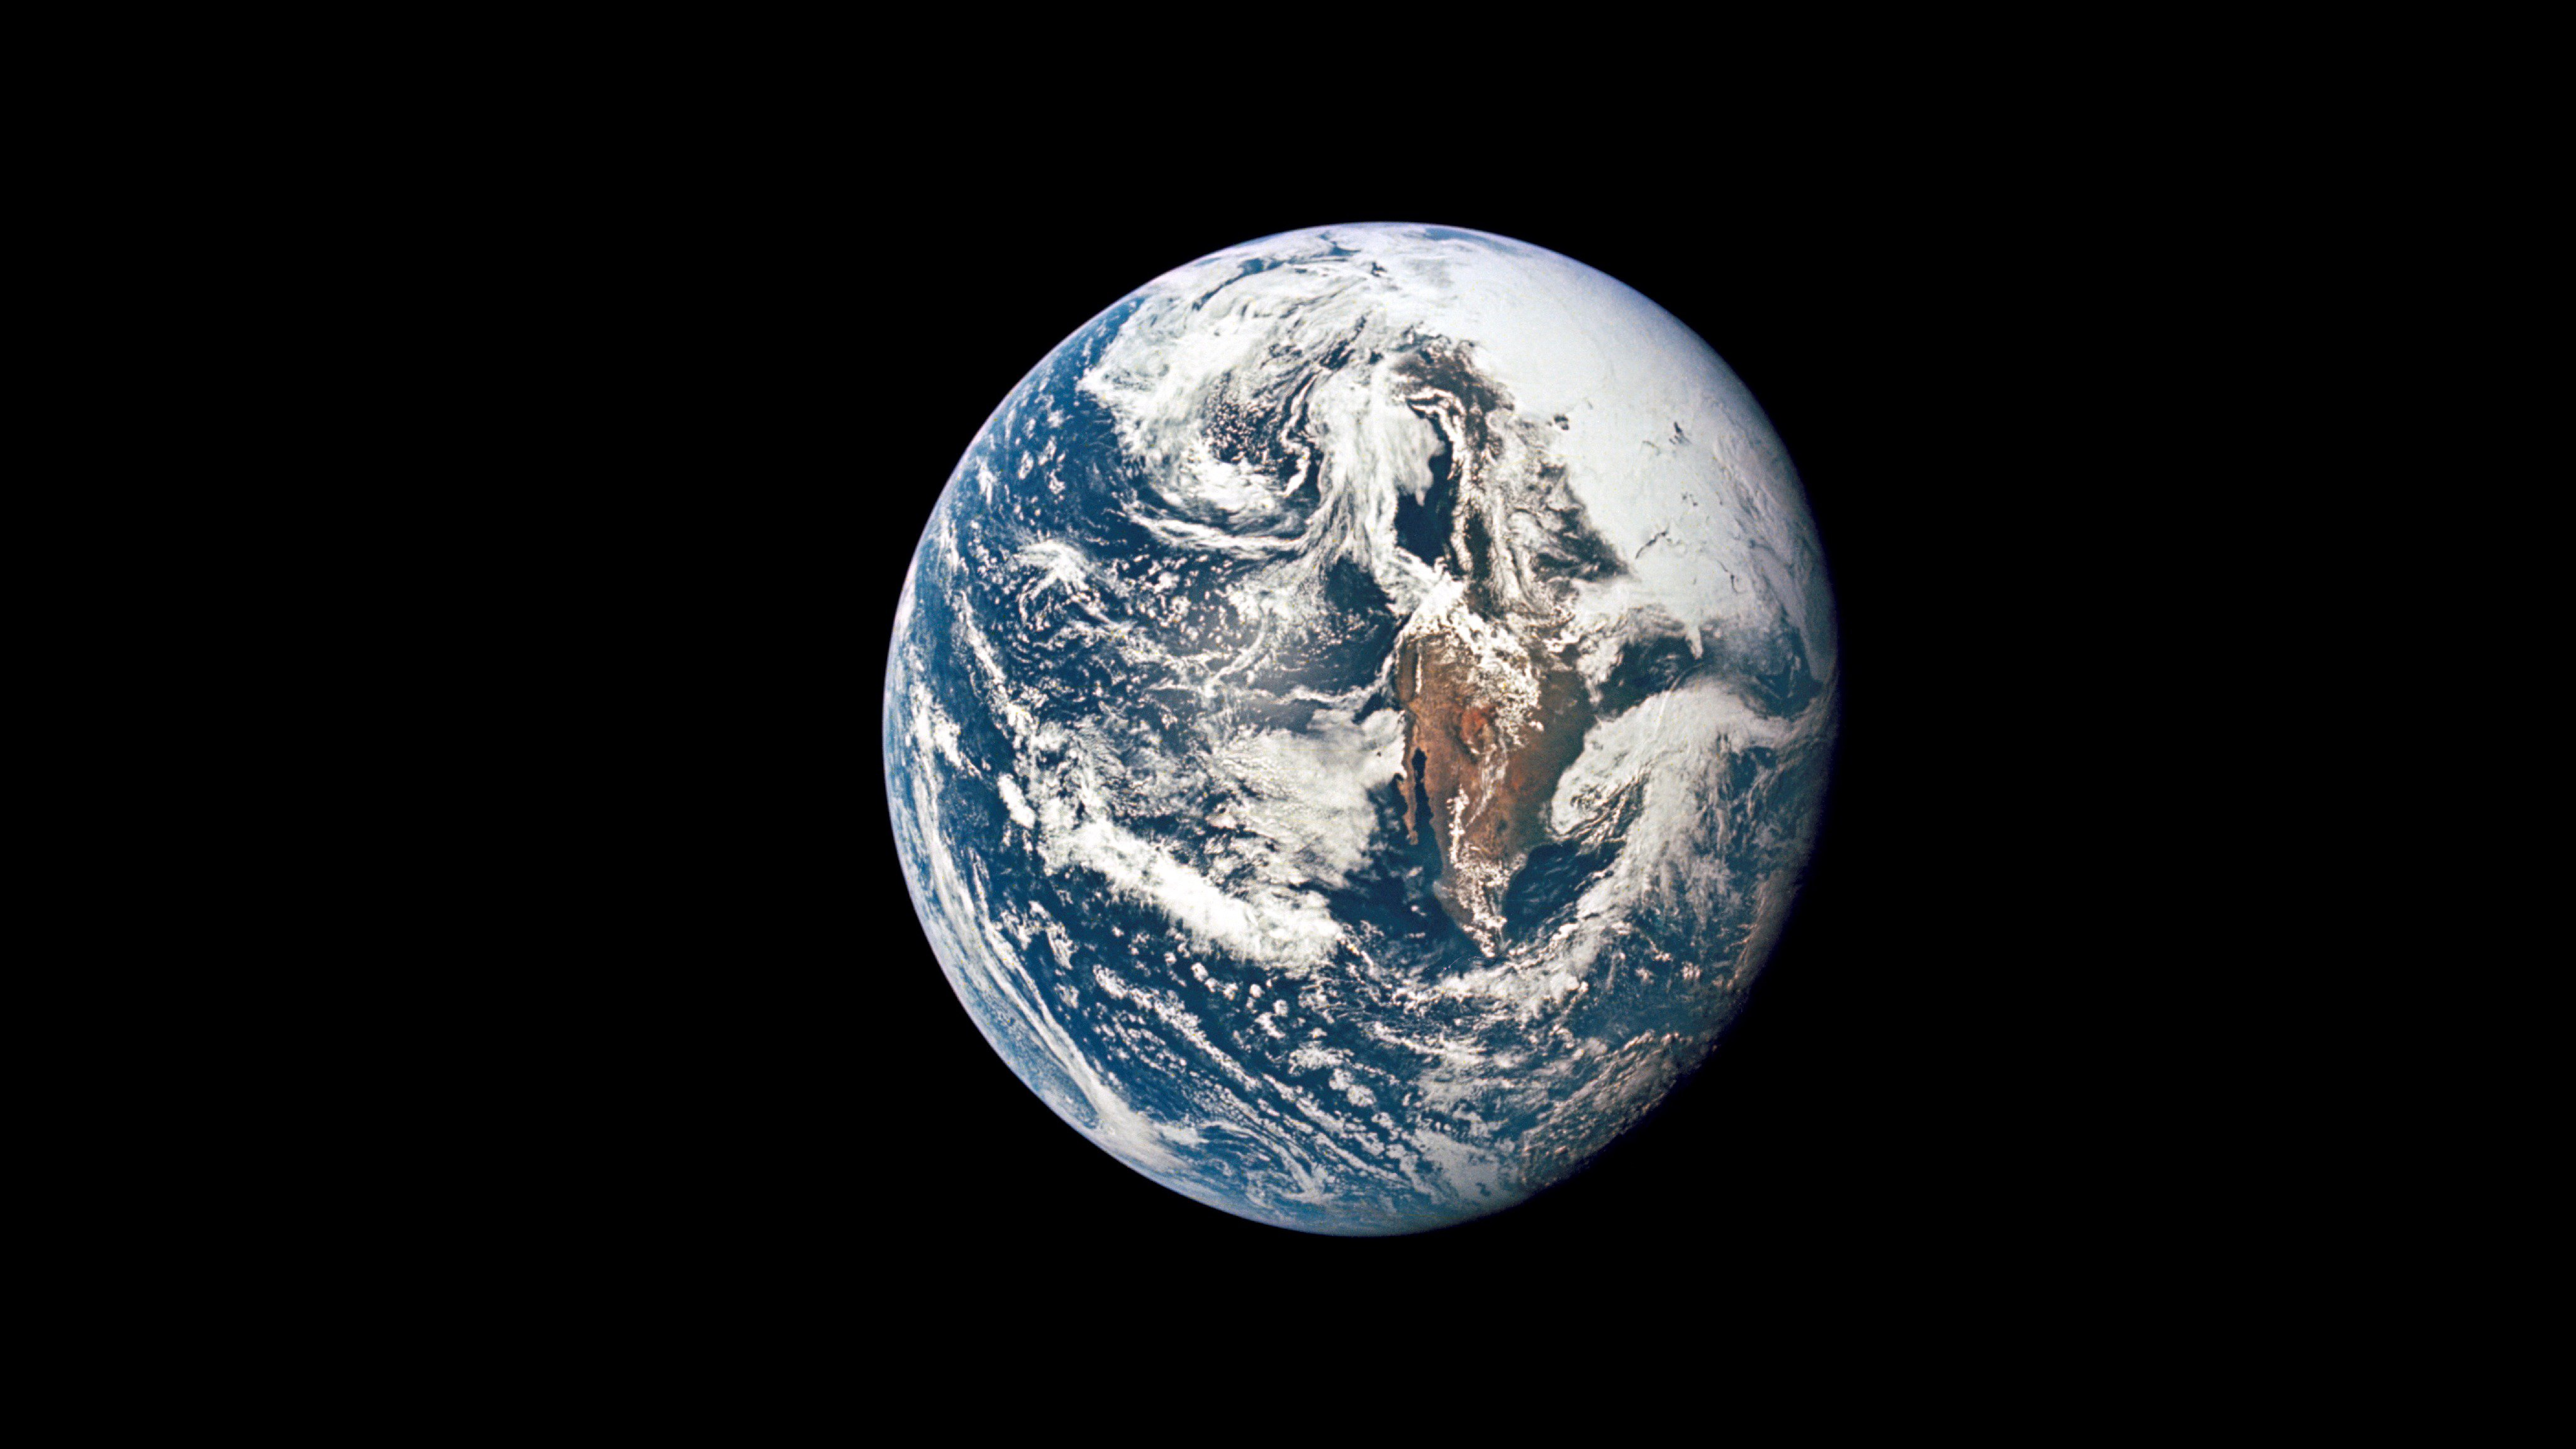 Earth Day 2019 These Amazing NASA Images Show Earth from Above 4095x2303